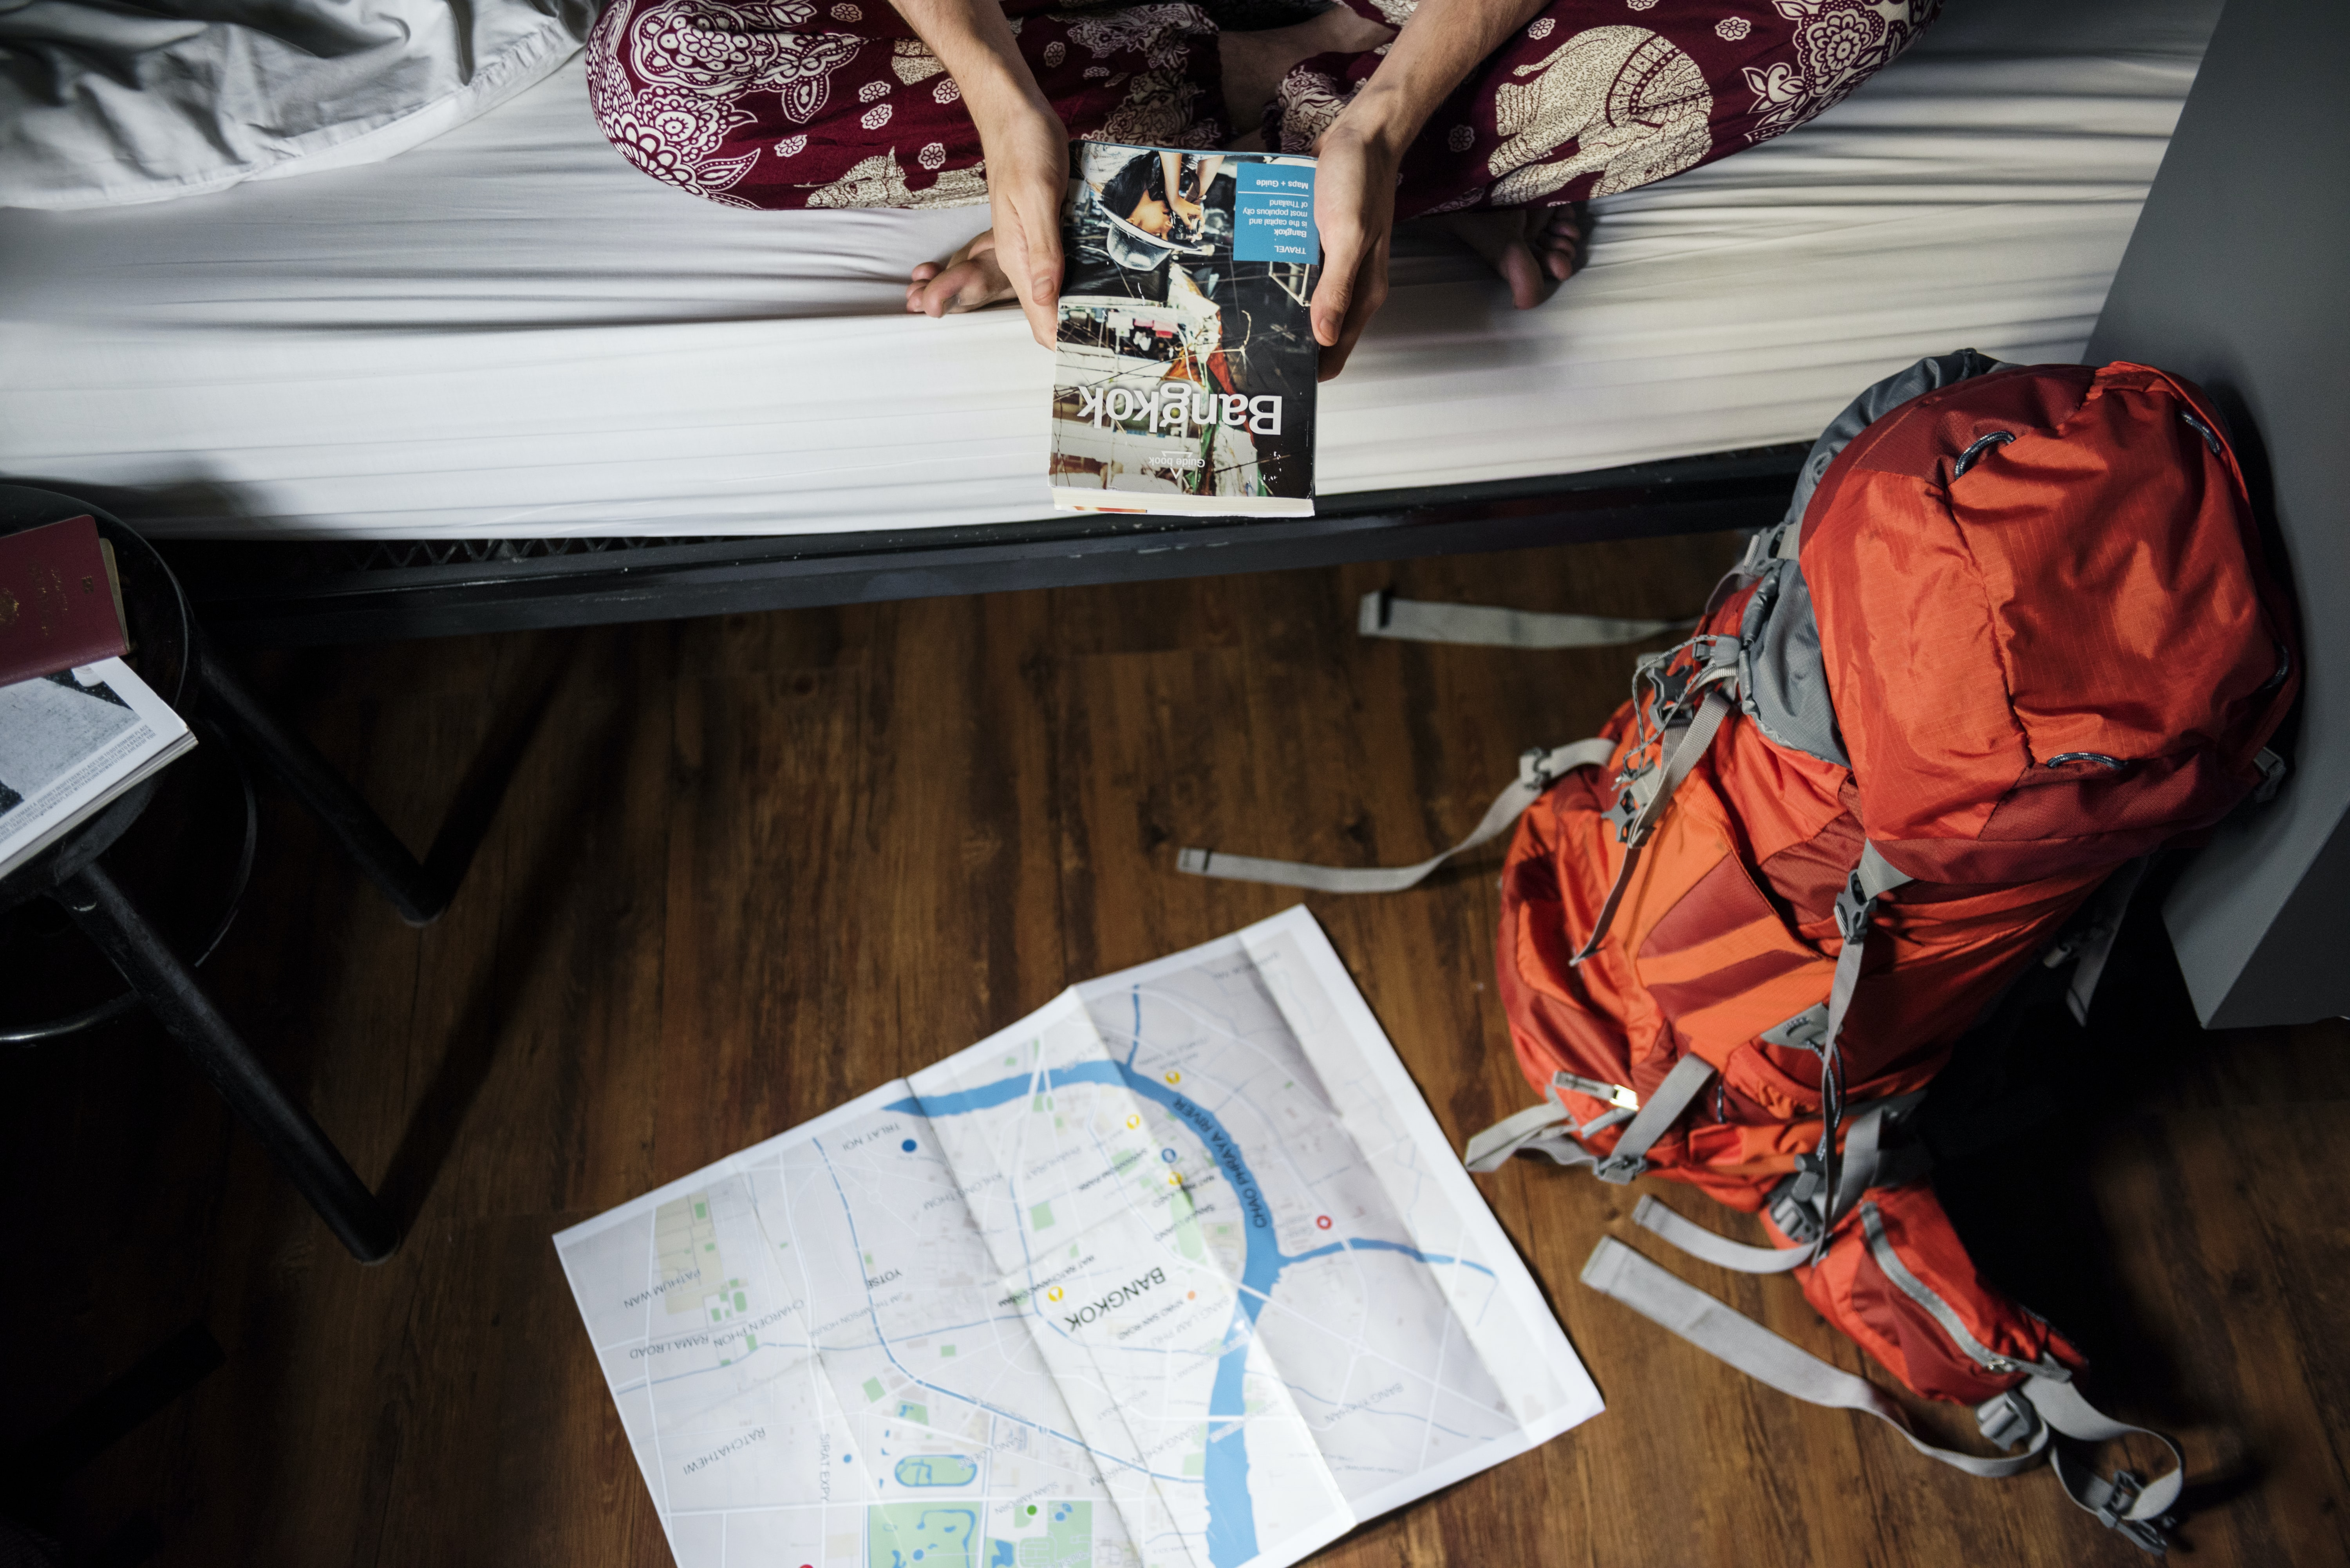 red and grey hiking backpack beside bed